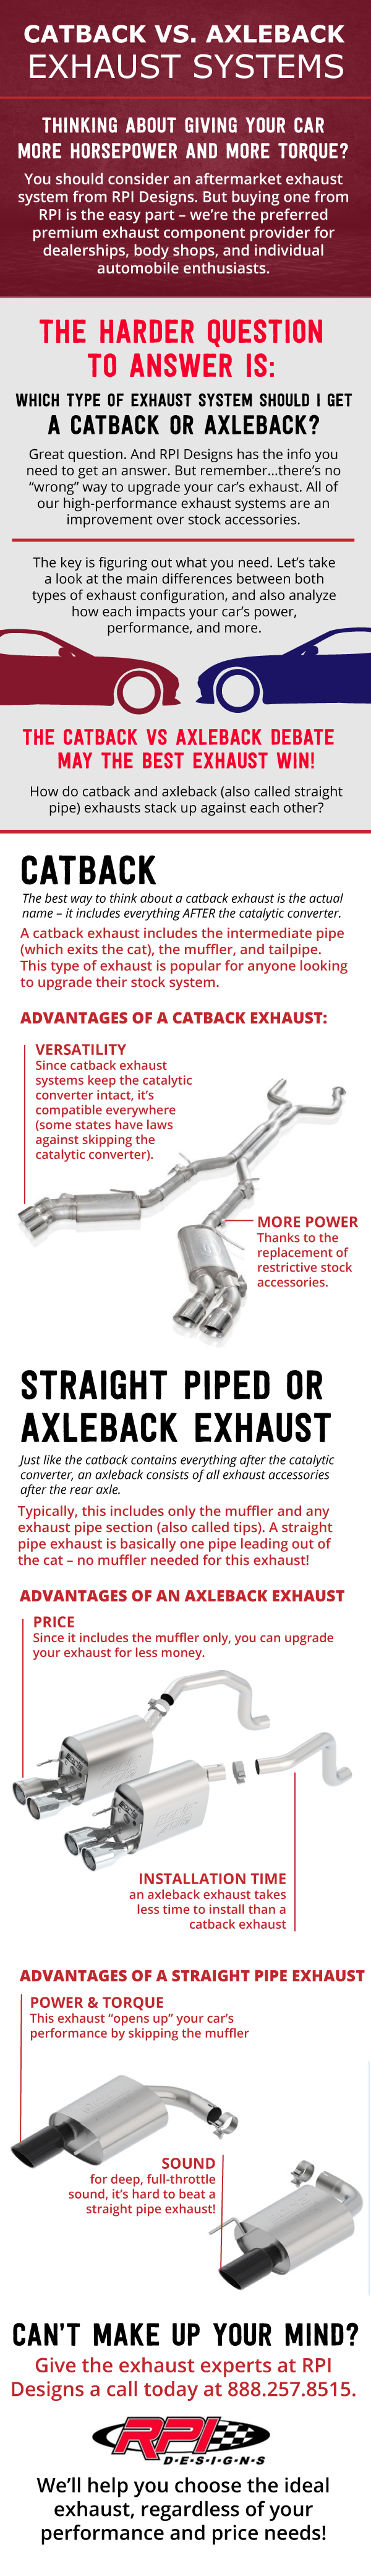 How to Select an Exhaust